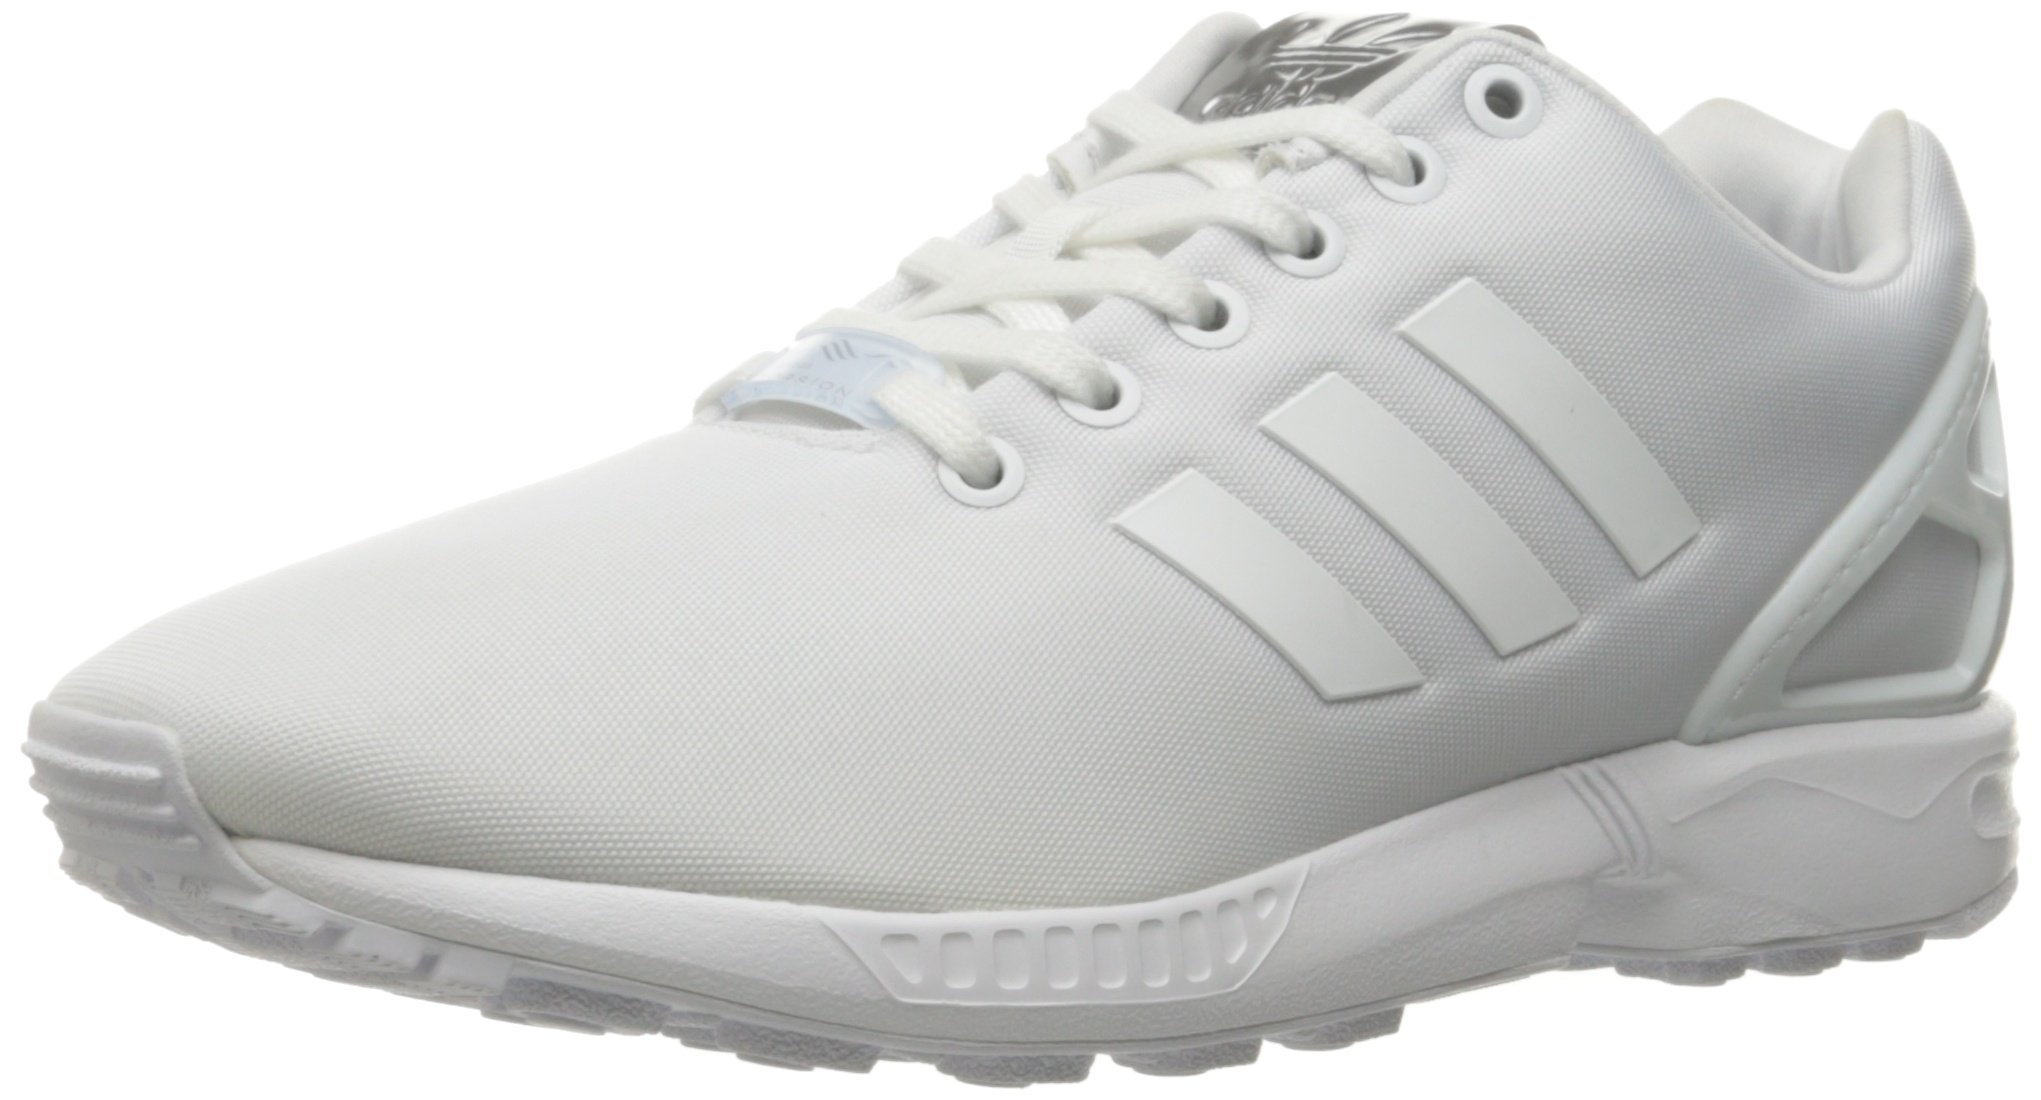 low cost c51bf fa602 adidas Originals Women's Shoes   ZX Flux Fashion Sneakers, White, (8.5 M US)